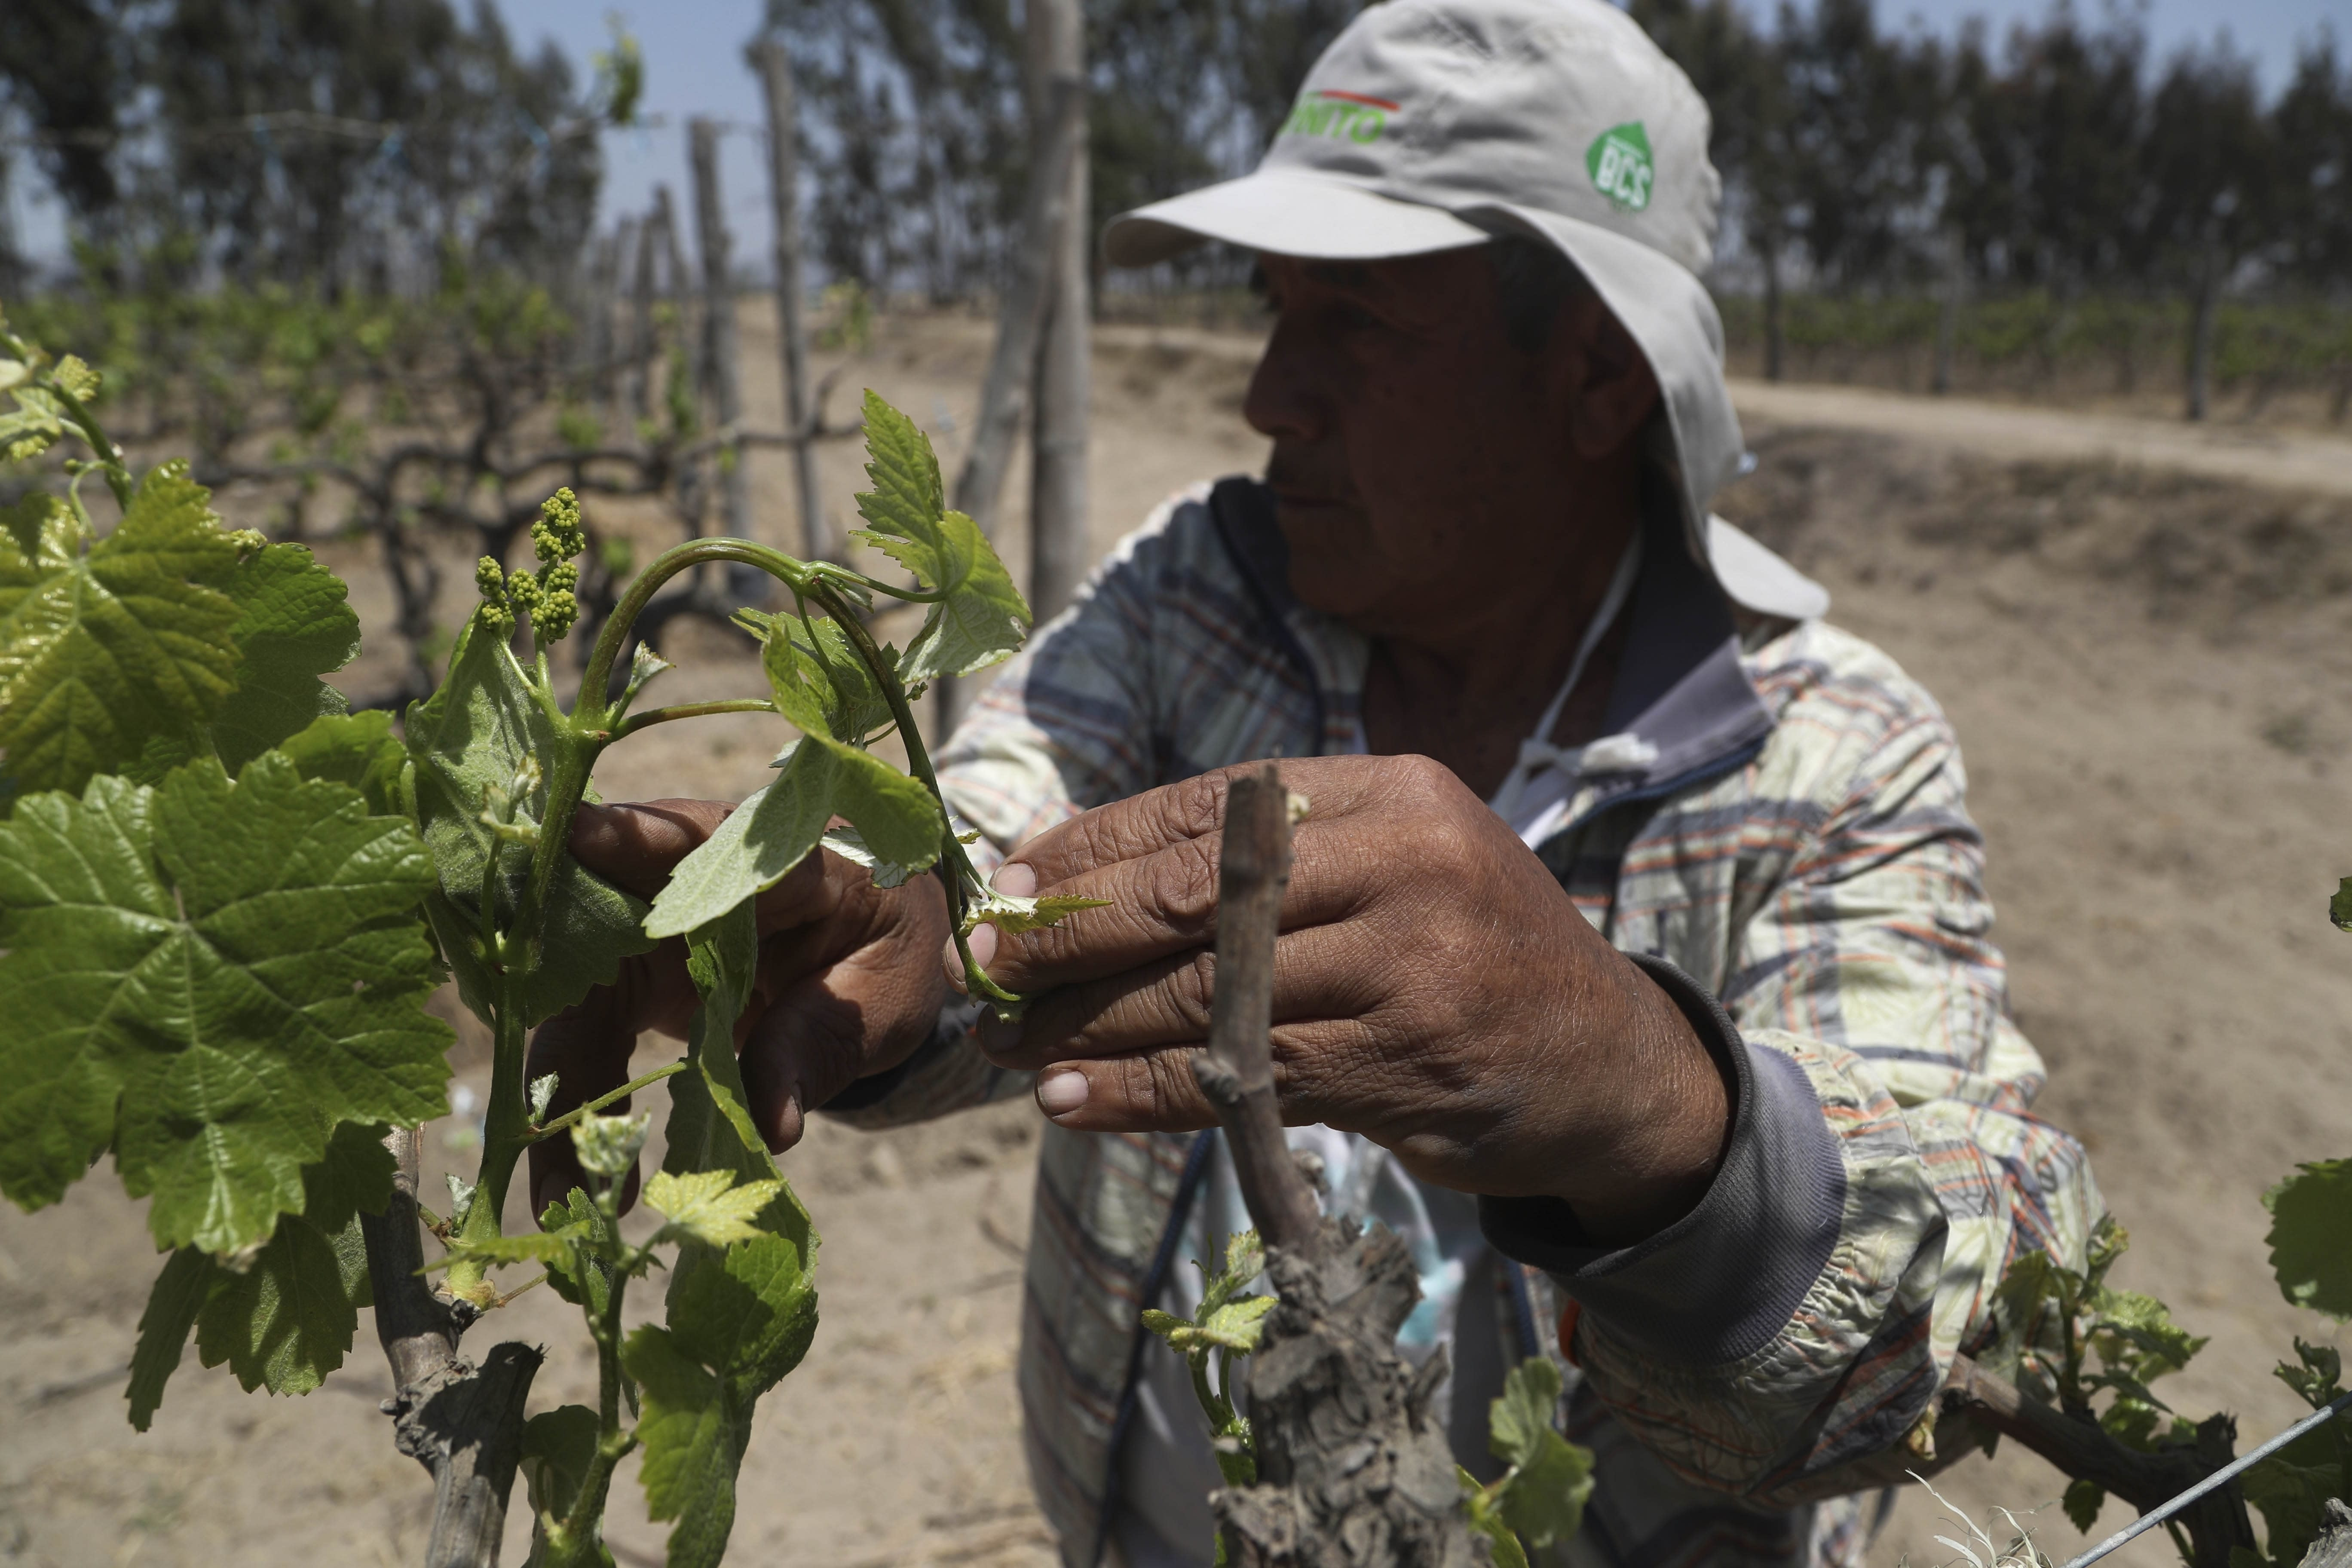 Farmer Nicanor Tasaico looks for small grapes on a grapevine at his vineyard in Ica, Peru, Monday, Sept. 28, 2020. More than 500 Pisco producers have seen their sales collapse by half and thousands of grape growers have had their fields ruined because of the late harvests, because of the strict lockdown implemented to stop COVID-19. (AP Photo/Martin Mejia)